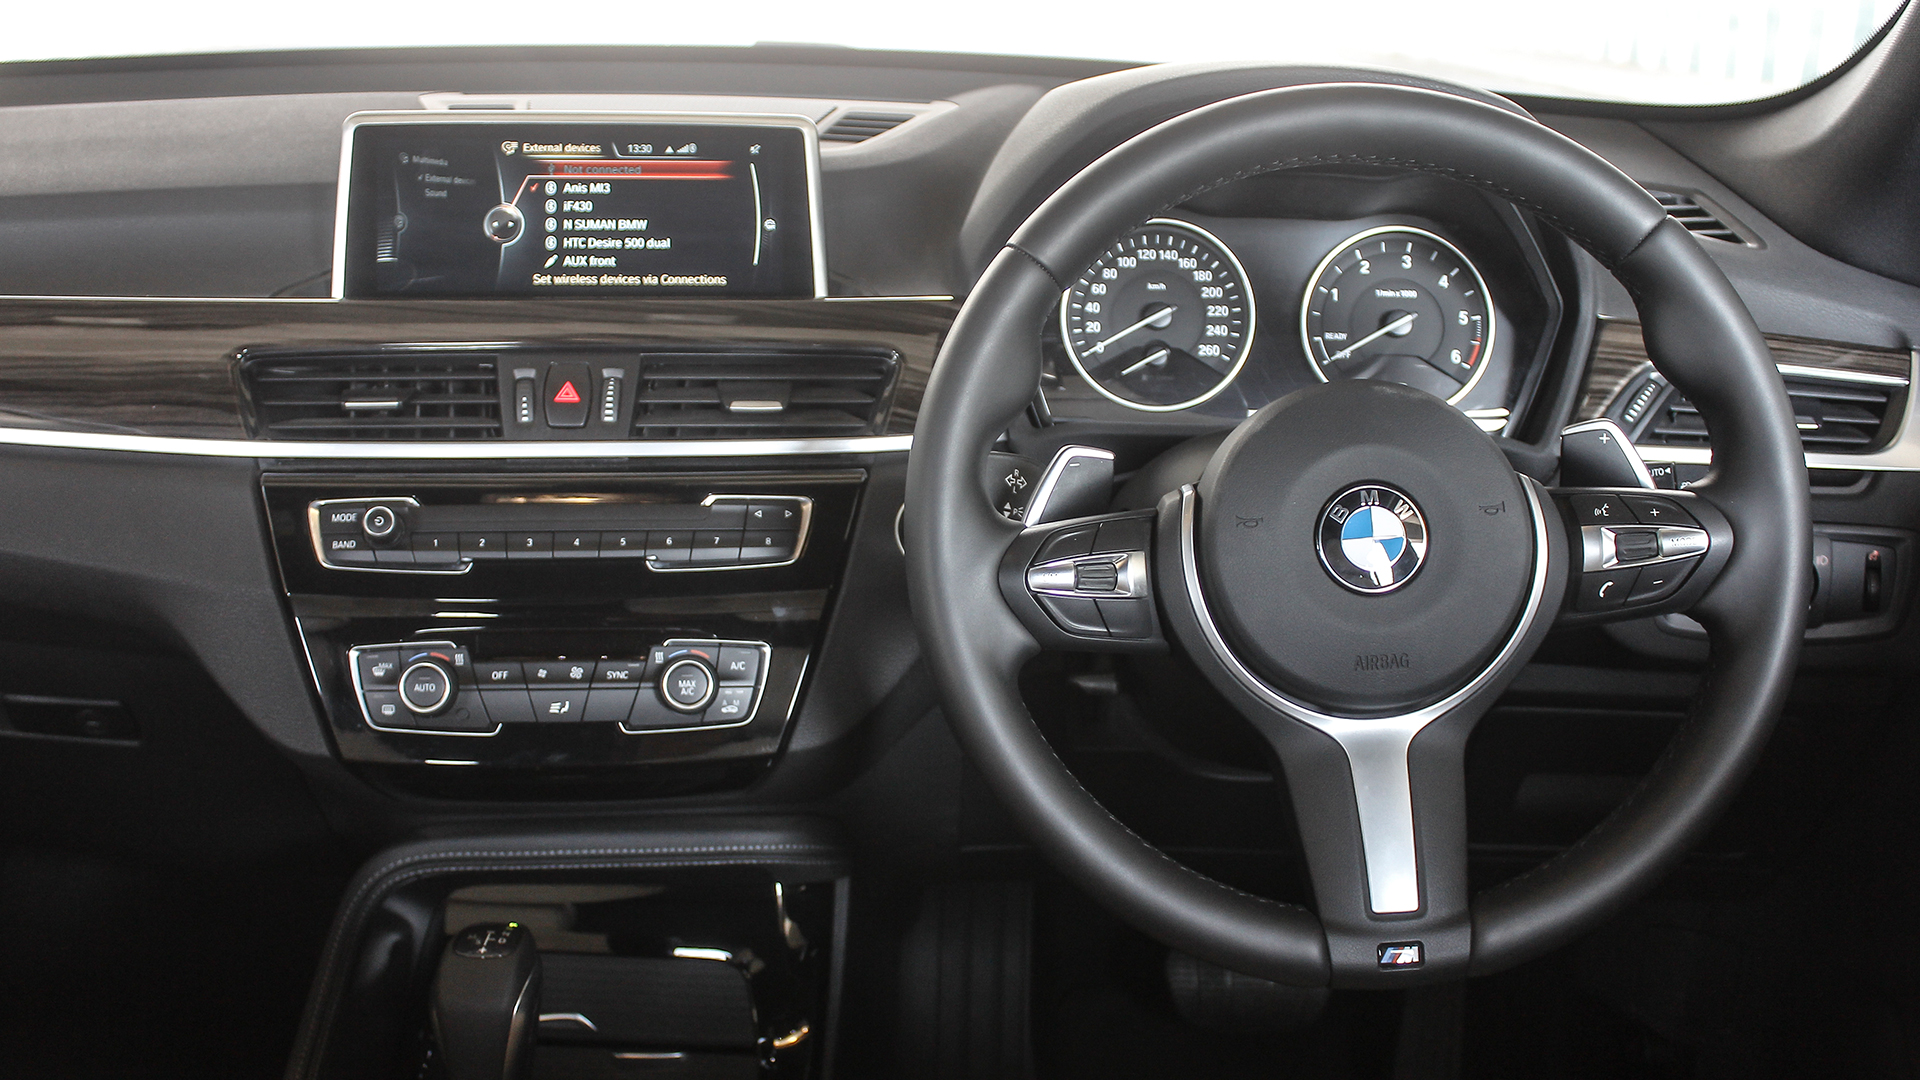 Bmw X1 2020 Sdrive20d M Sport Price Mileage Reviews Specification Gallery Overdrive